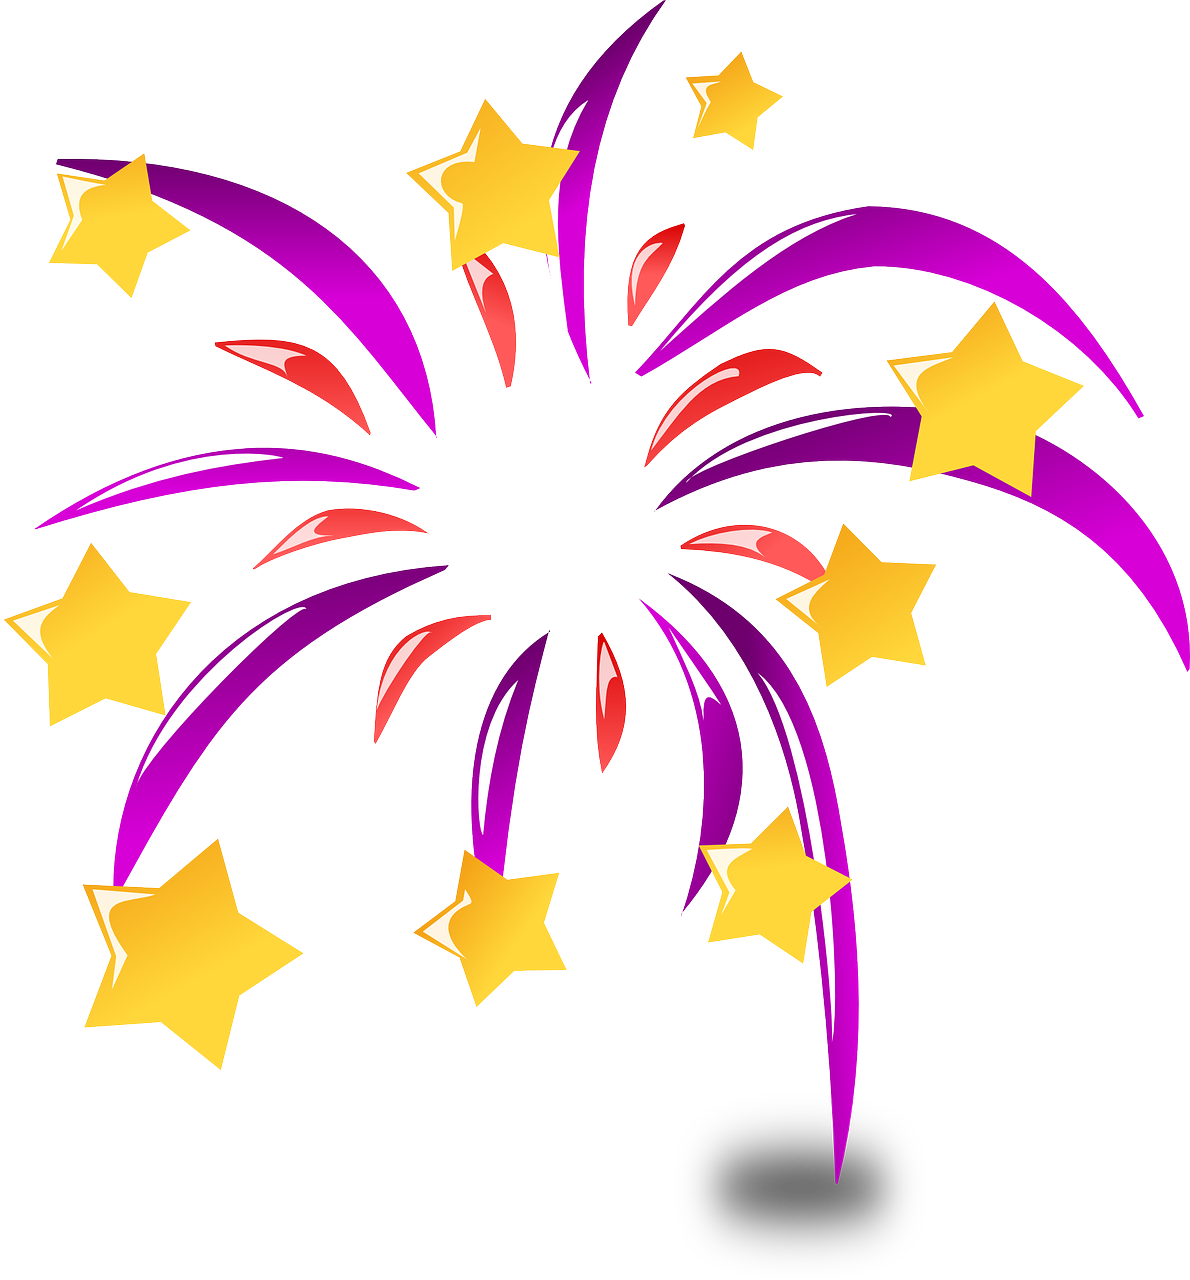 Gratis afbeelding op pixabay. Football fireworks after the game clipart